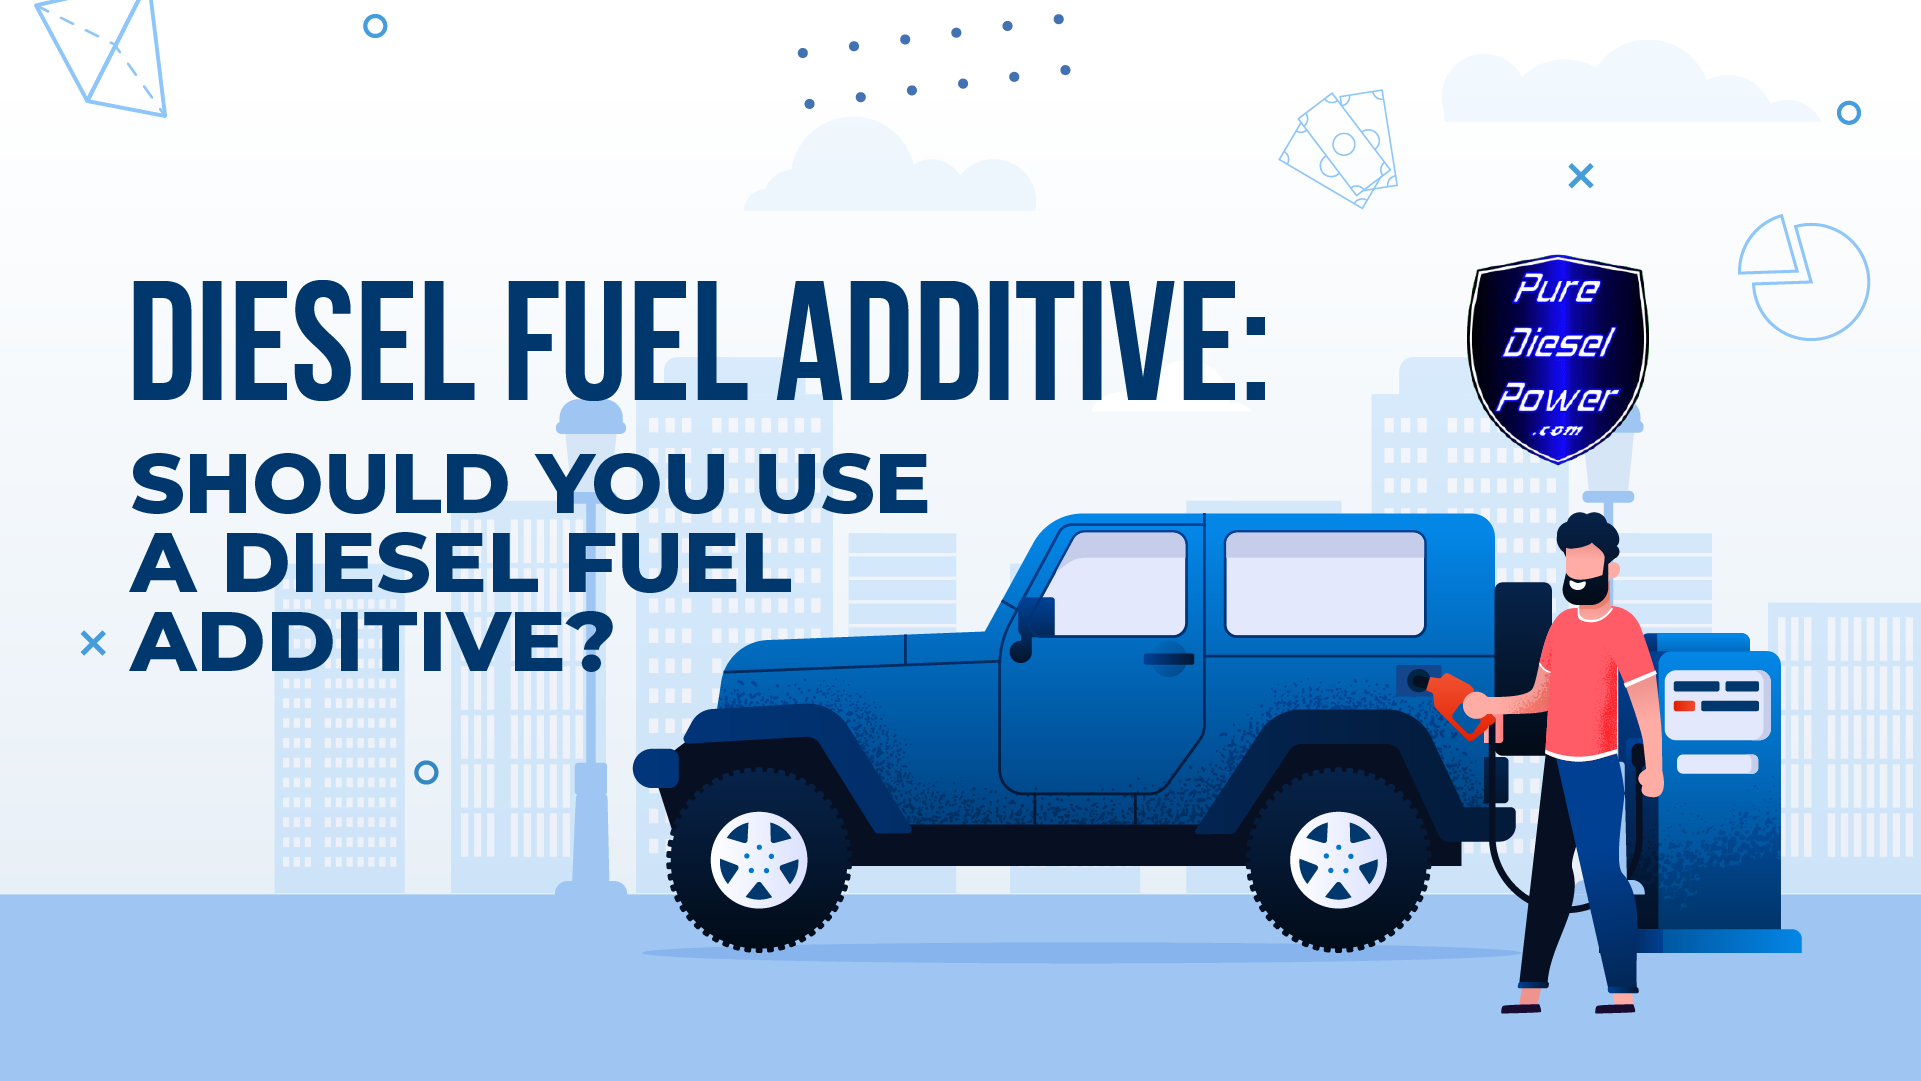 Diesel-Fuel-Additive_Should-You-Use-A-Diesel-Fuel-Additive-featured-image